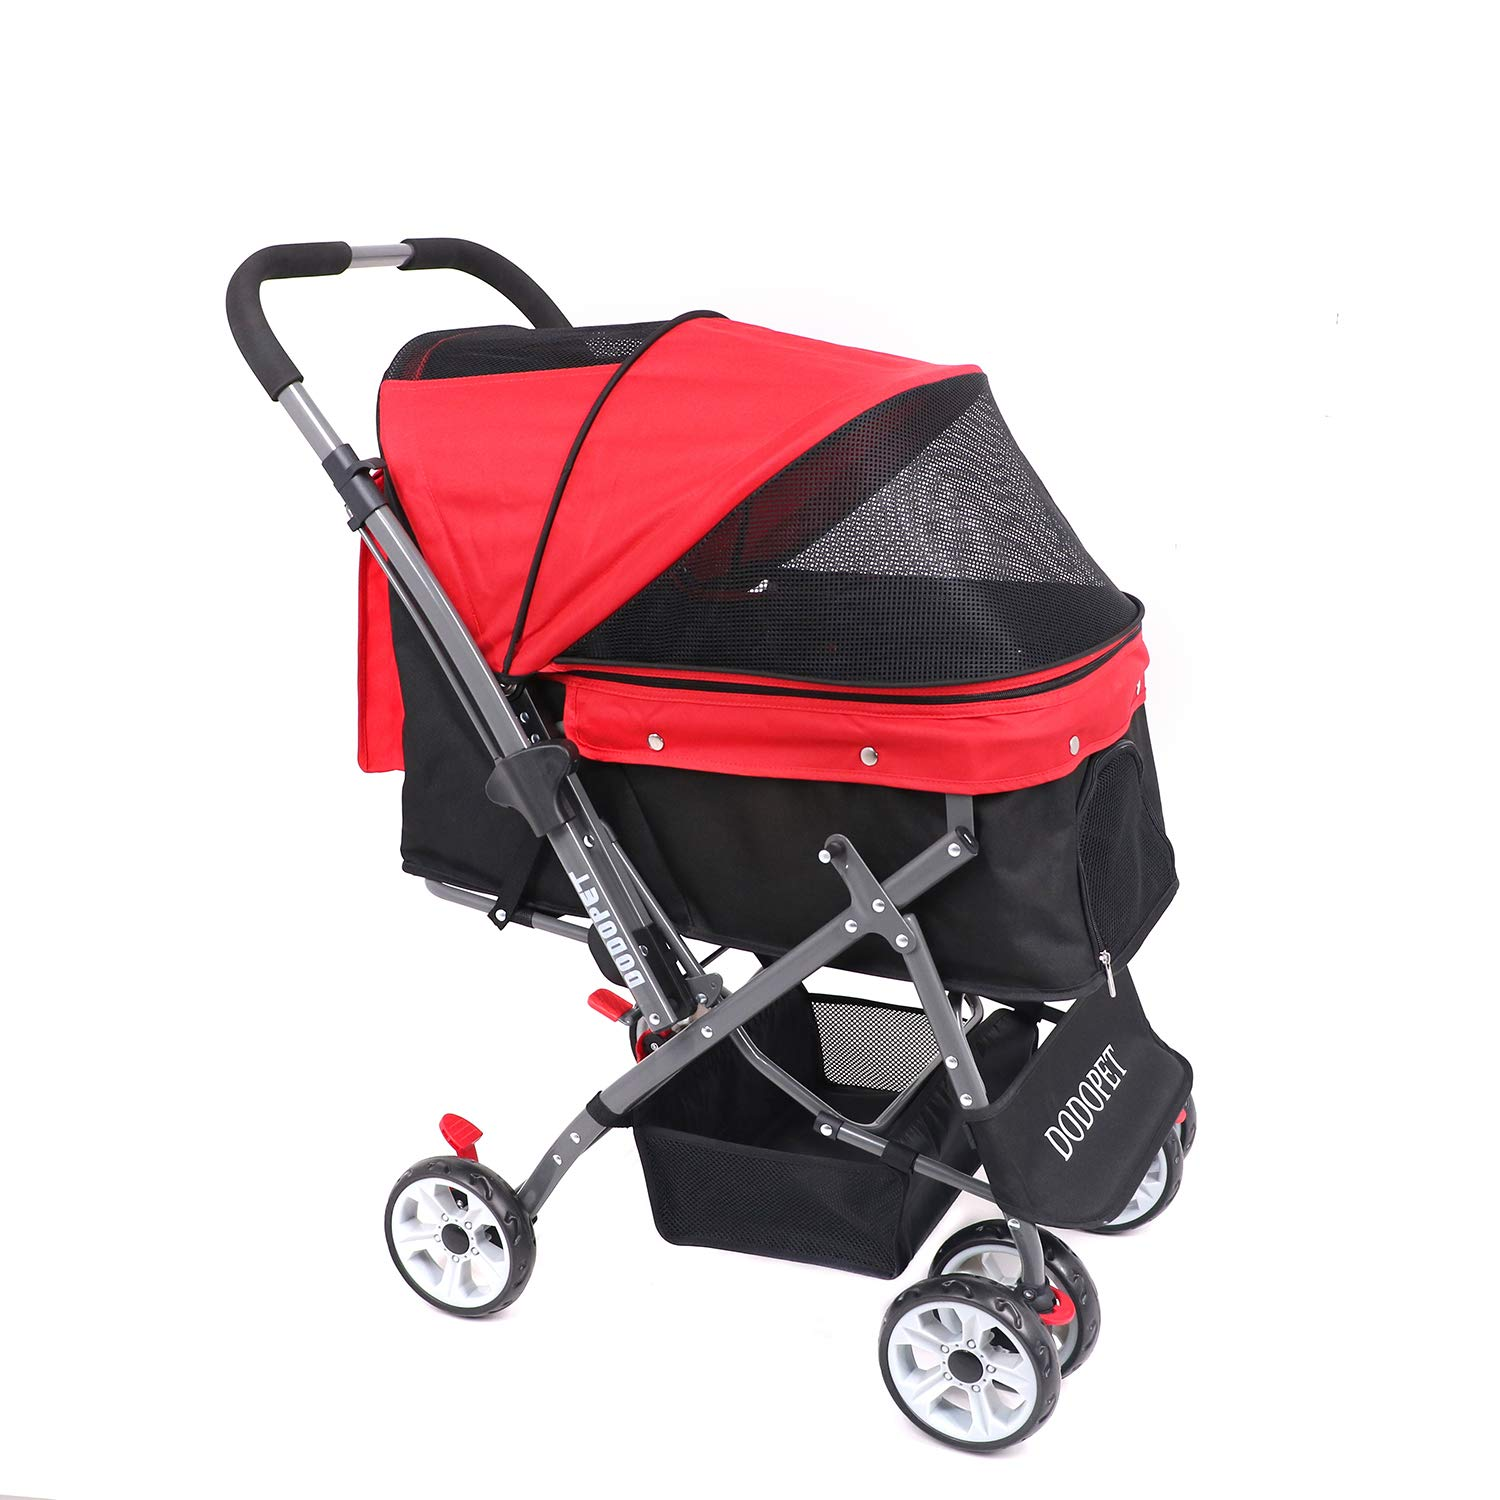 DODOPET - Dog/Cat/Pet Stroller, 4 Wheel Dog Cage Stroller, Reversible Handle Bar, Pet Travel Folding Carrier, Strolling Cart, Strong and Stable, for Medium Pets Up to 50 lbs, Two Color(Red)